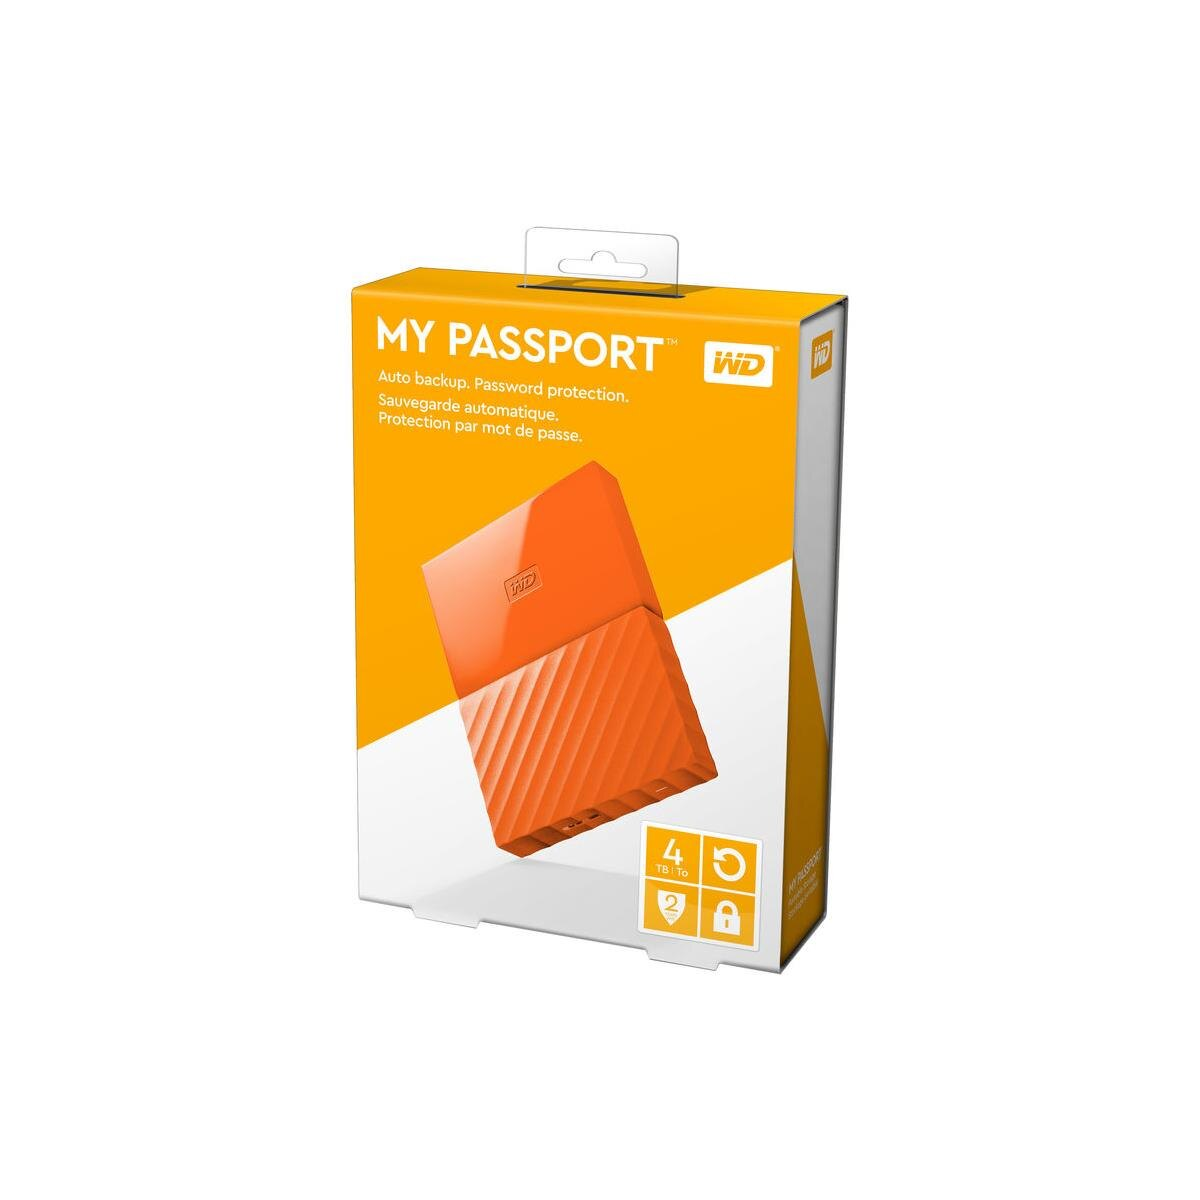 WD My Passport WDBYFT0040BOR-WESN 4 TB External Hard Drive - USB 3.0 - Portable - Orange - 256-bit Encryption Standard 2